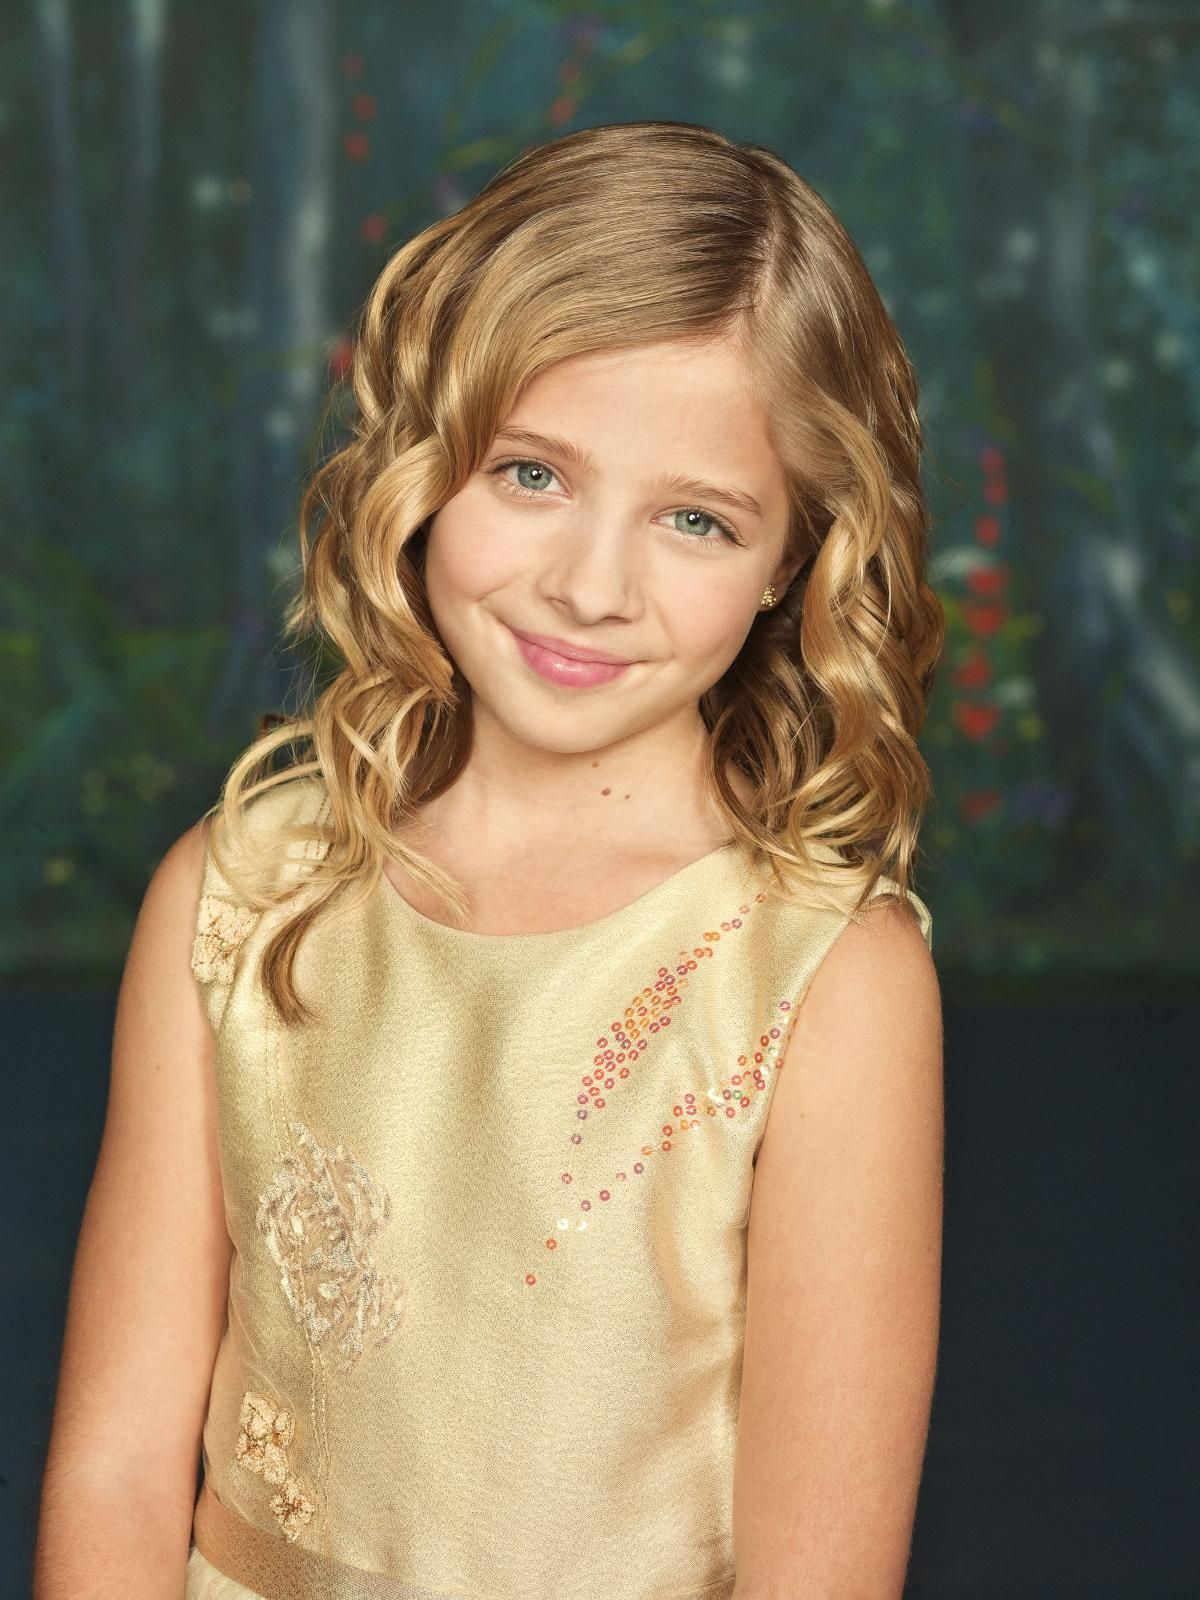 Ls Island Models Jackie Evancho: A very young, sweet girl with super talent. Let's hope she